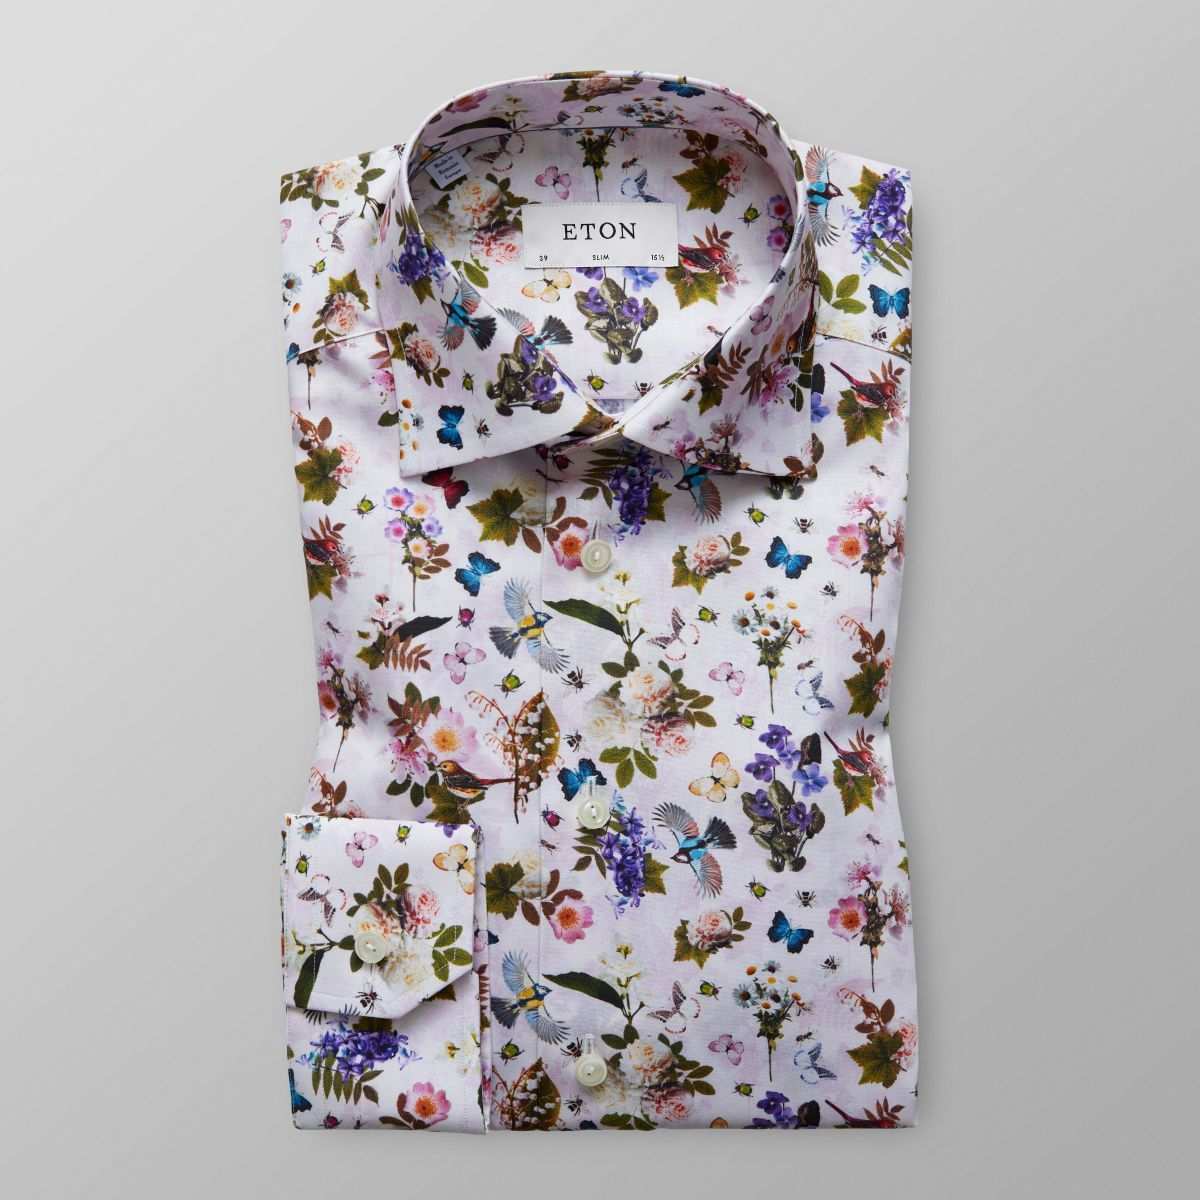 b91ce62e White Floral & Fauna Print Shirt - Slim fit | Eton Global | mens ...